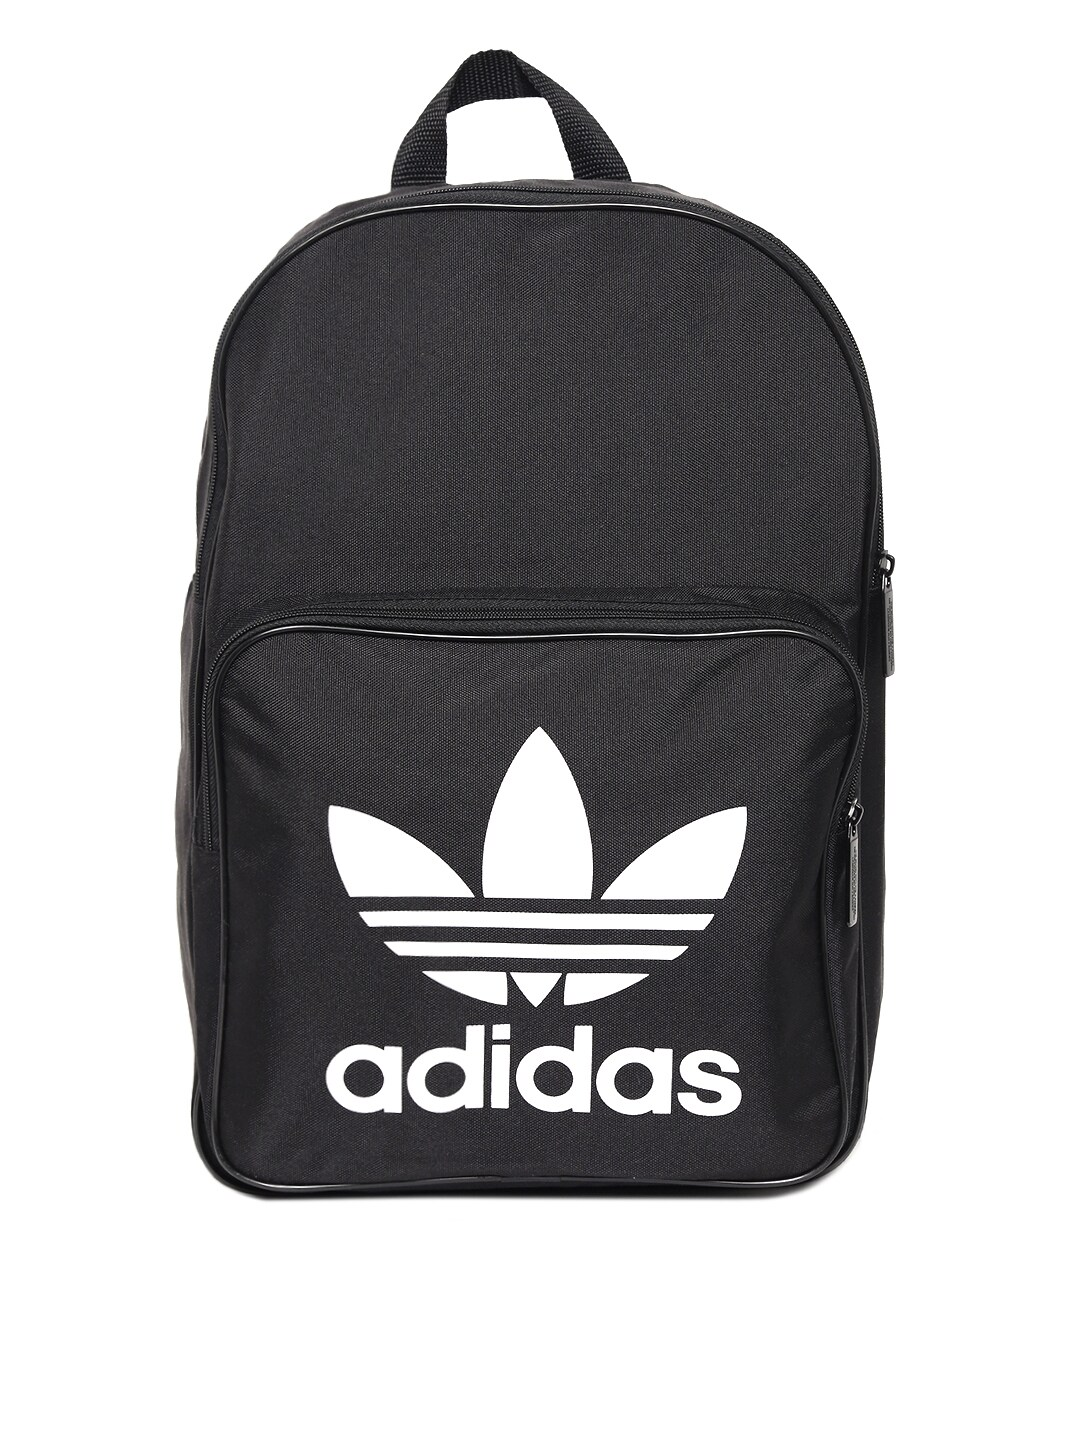 7d1f9b2dd22c Adidas Original Backpack - Buy Adidas Original Backpack online in India